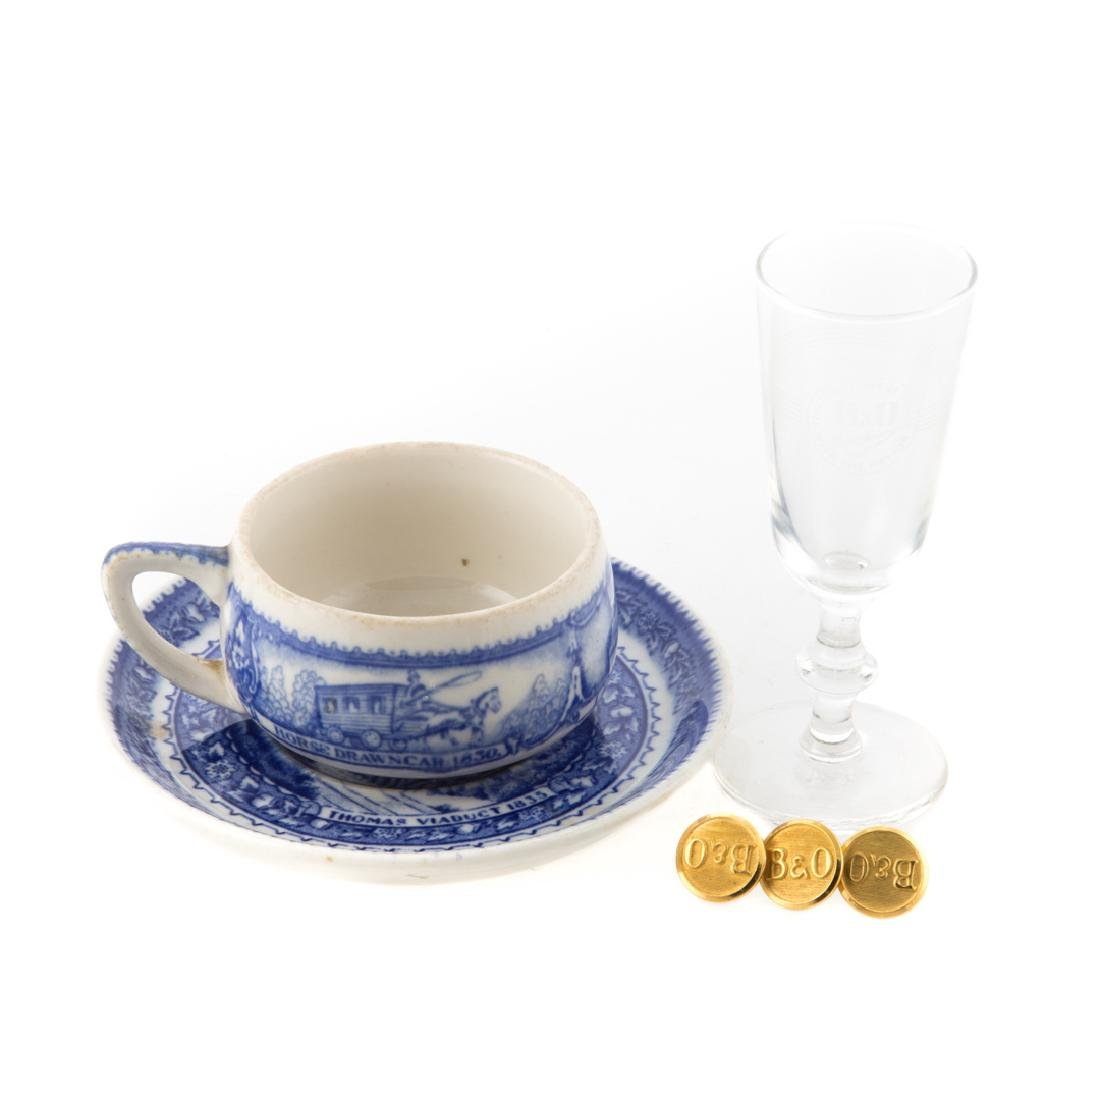 Lamberton B & O cup and saucer & 3 brass buttons